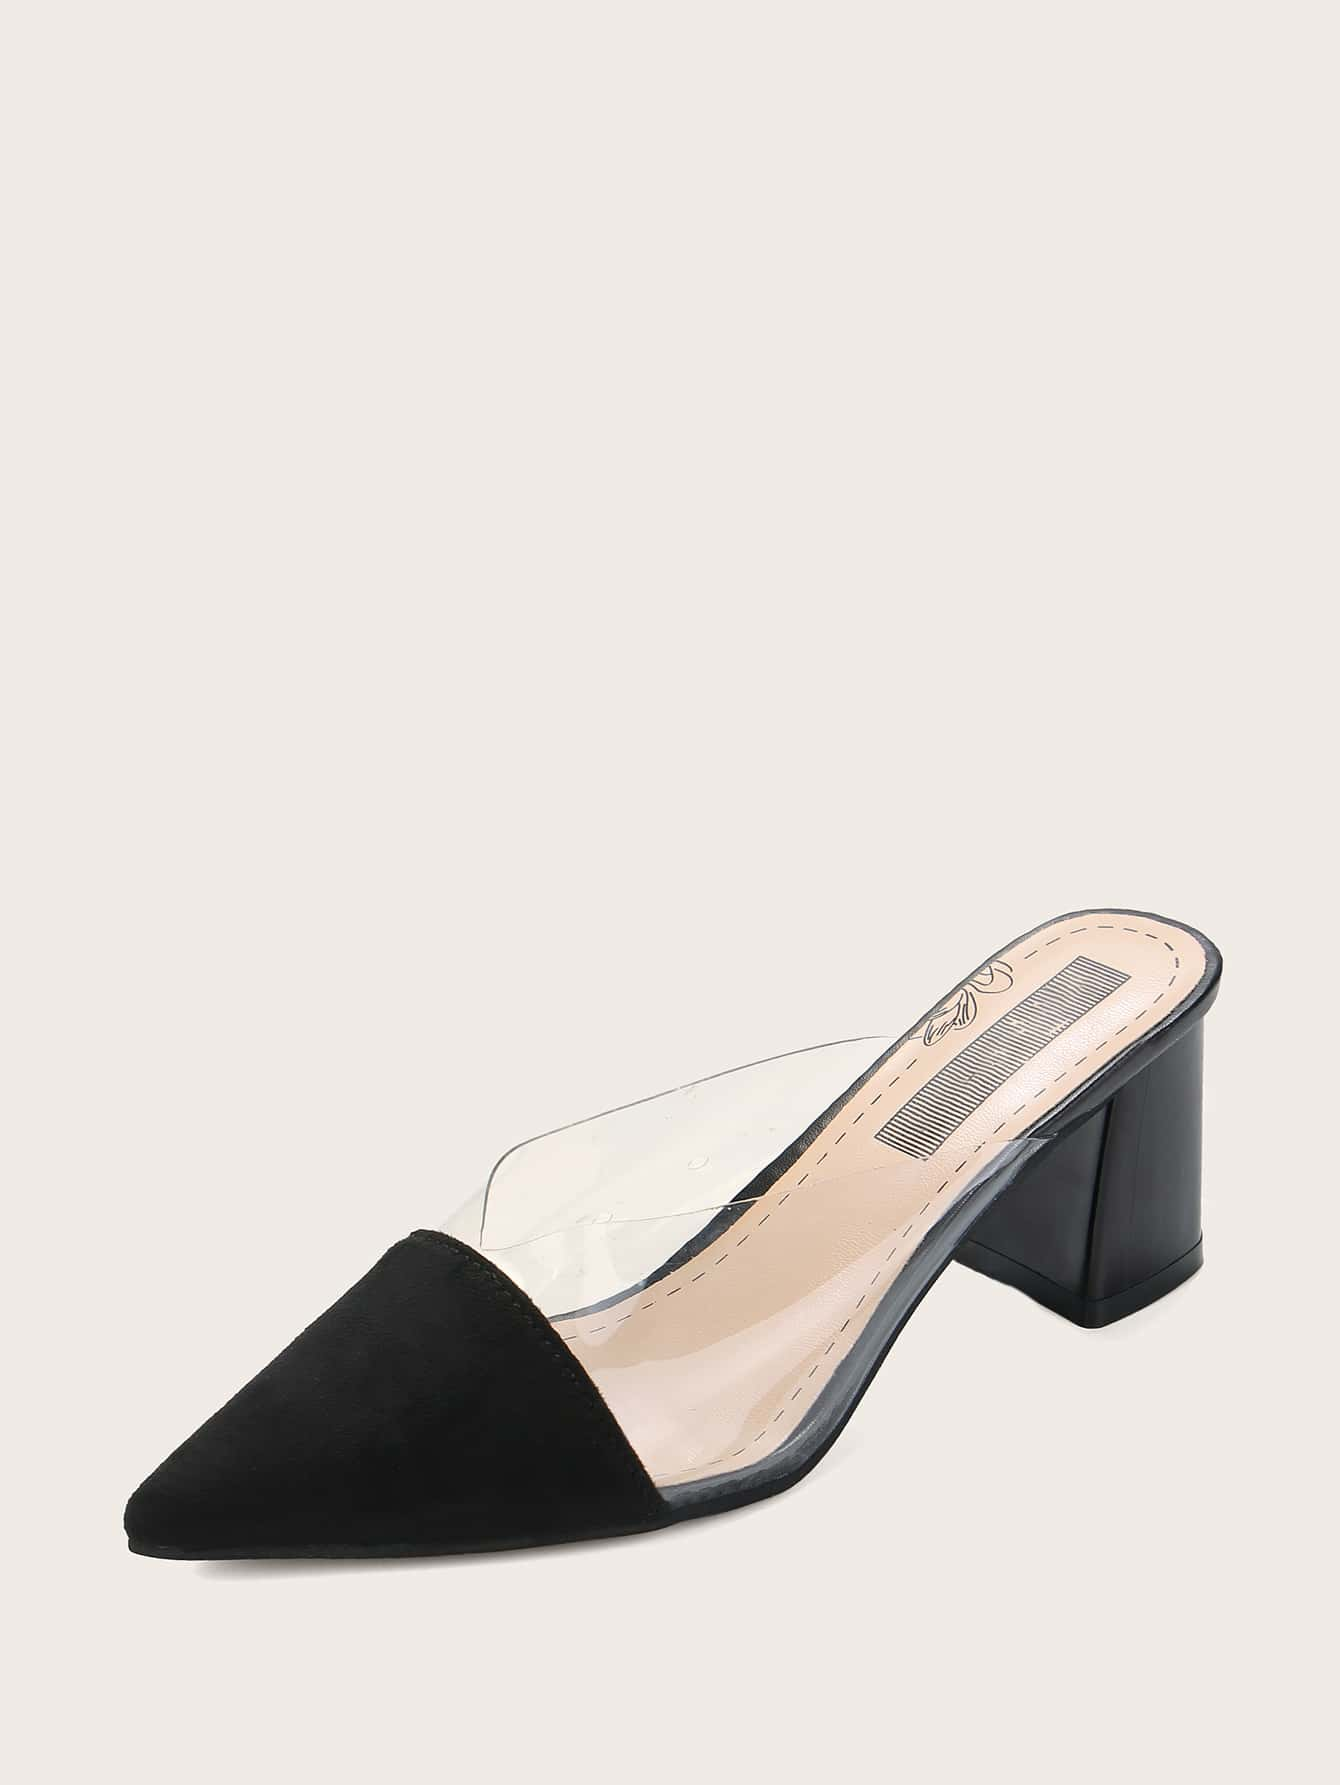 Transparent Point Toe Chunky Heeled Mules - FLJ CORPORATIONS